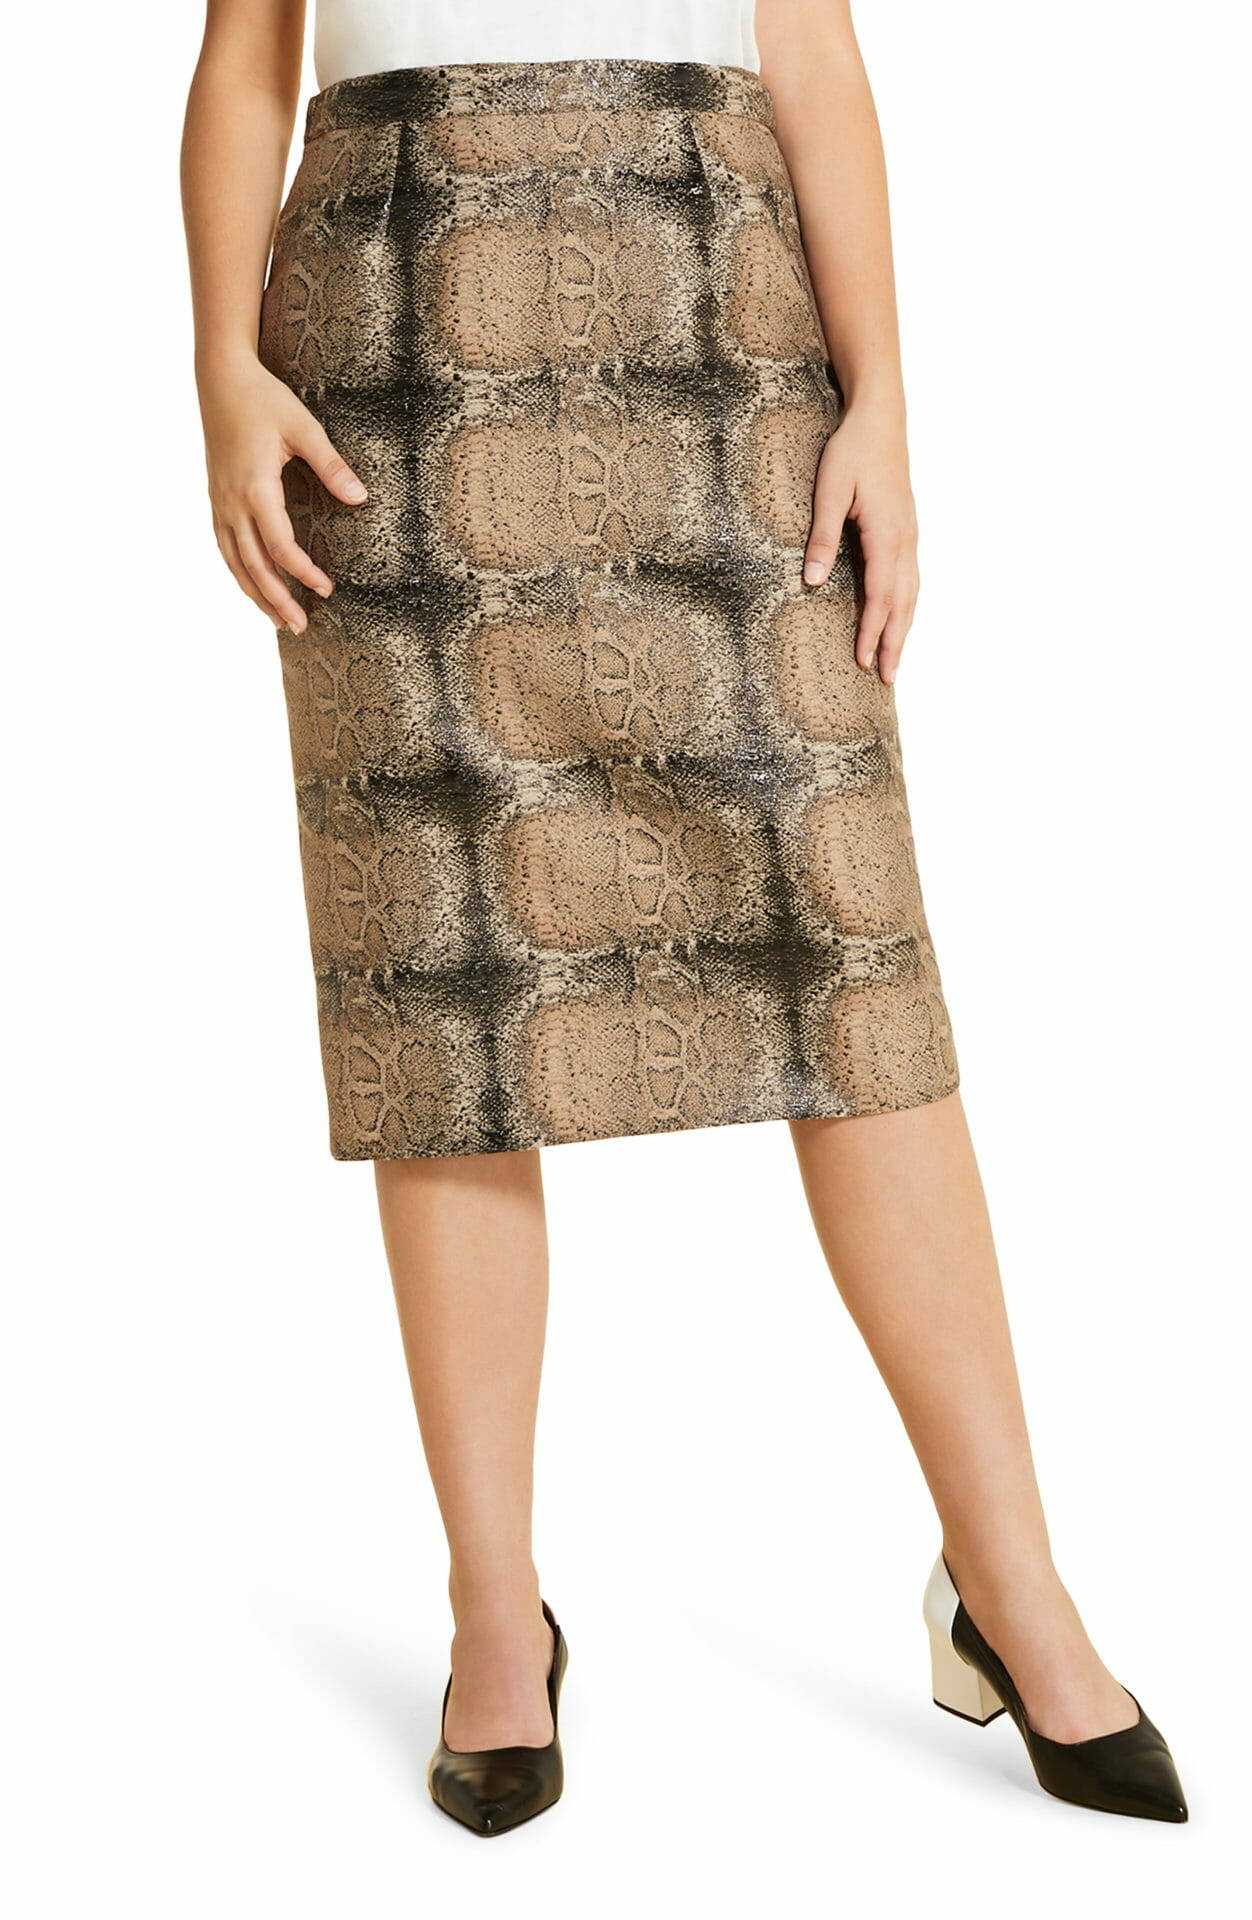 MARINA RINALDI Casanova Pencil Skirt, Main, color, HAZELNUT